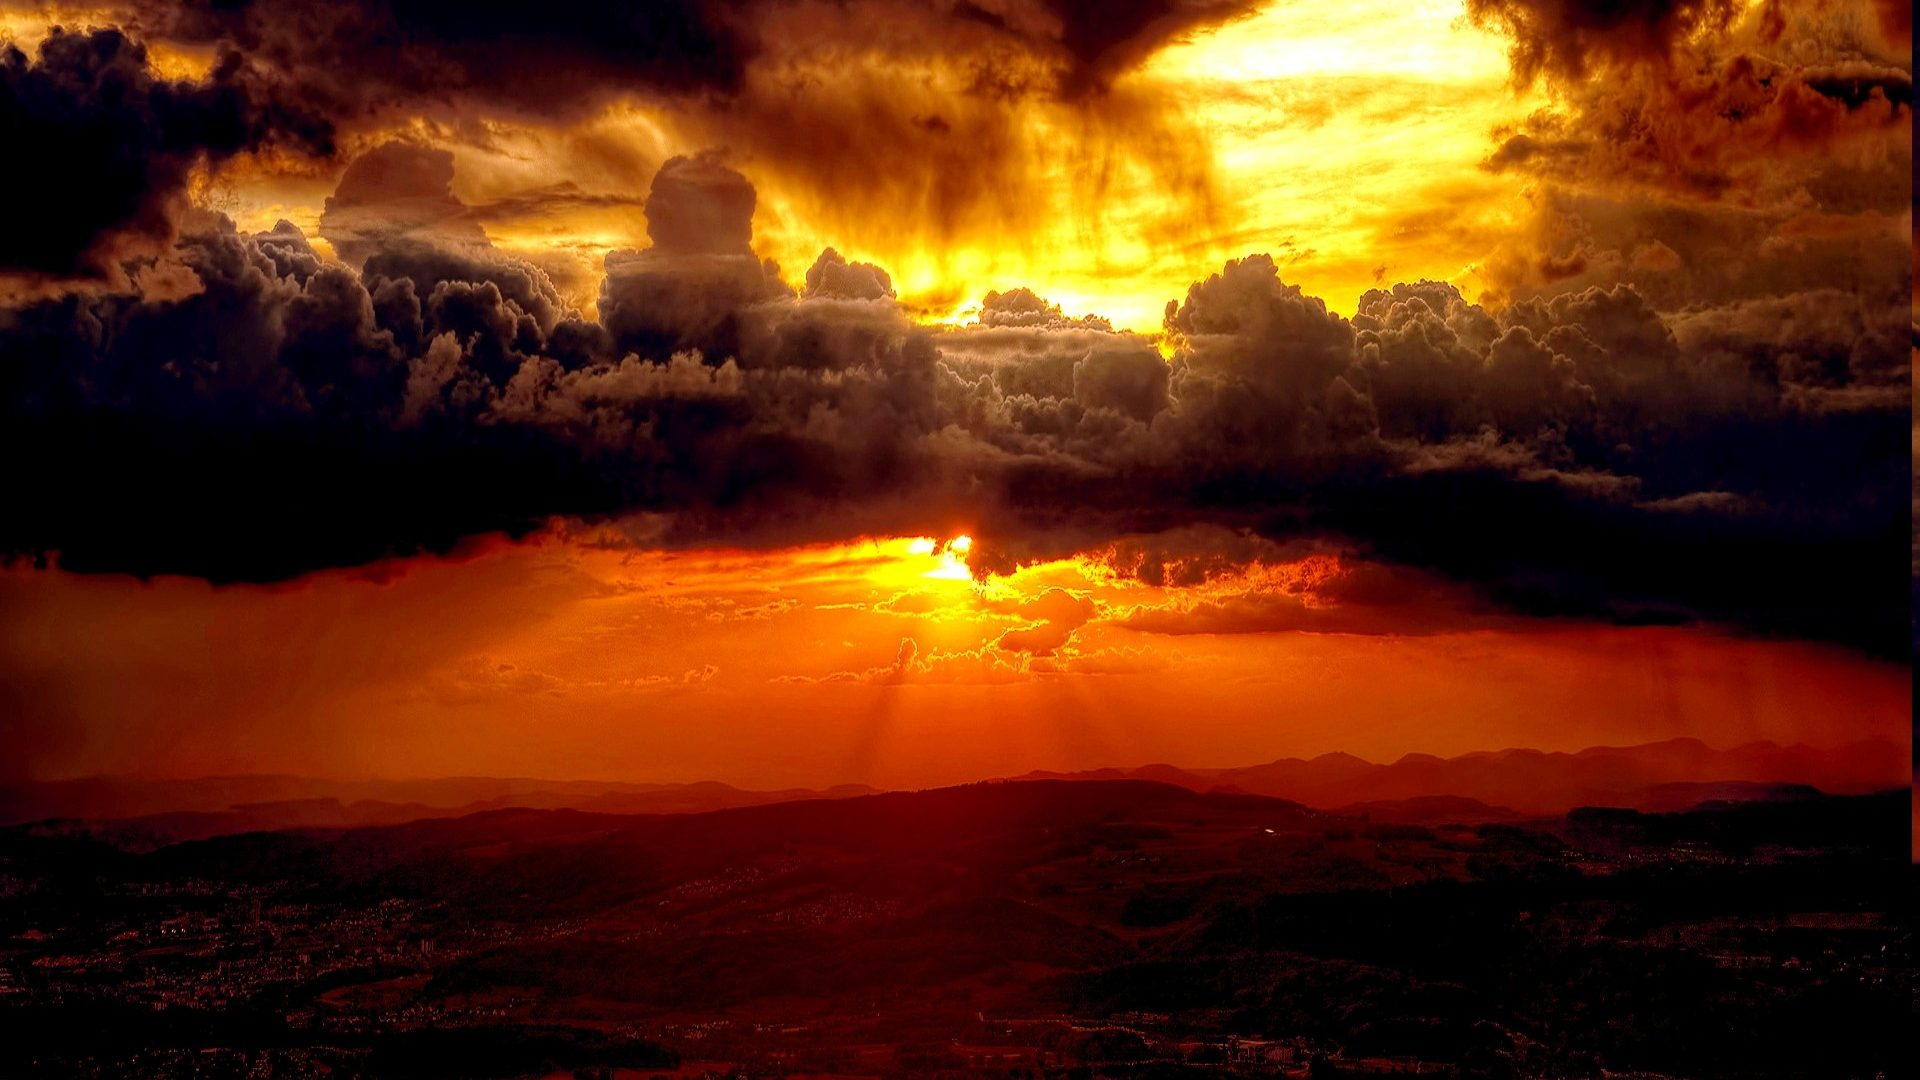 Golden Wallpaper 3d Sun And Clouds Wallpaper Pixelstalk Net